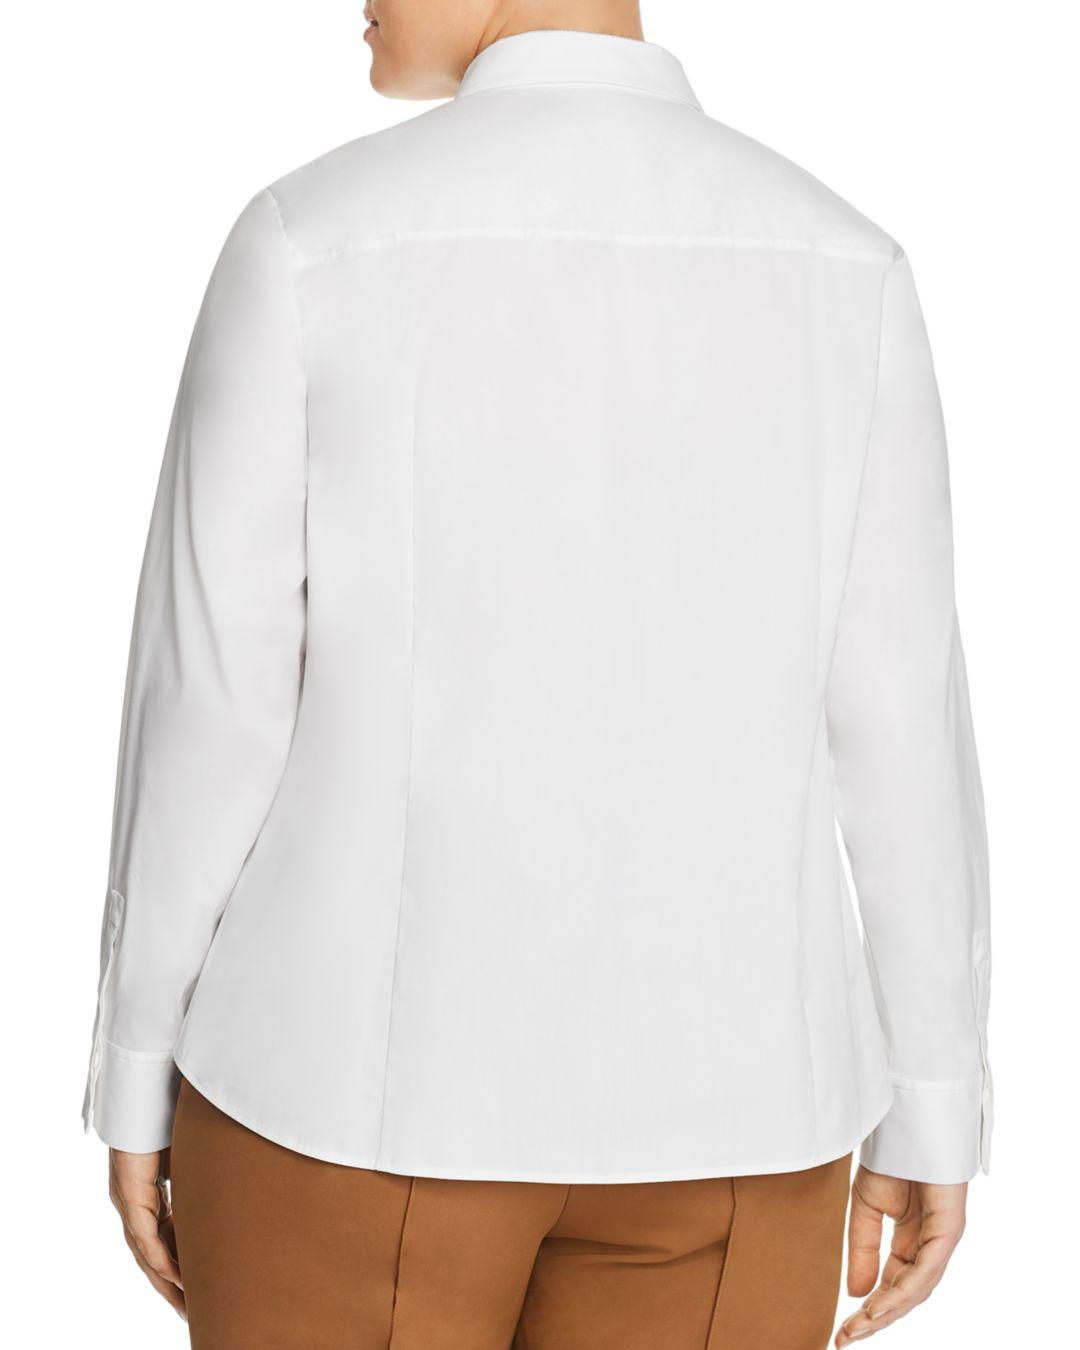 13b79134a7b2d0 Lyst - Lafayette 148 New York Phaedra Button-down Blouse in White